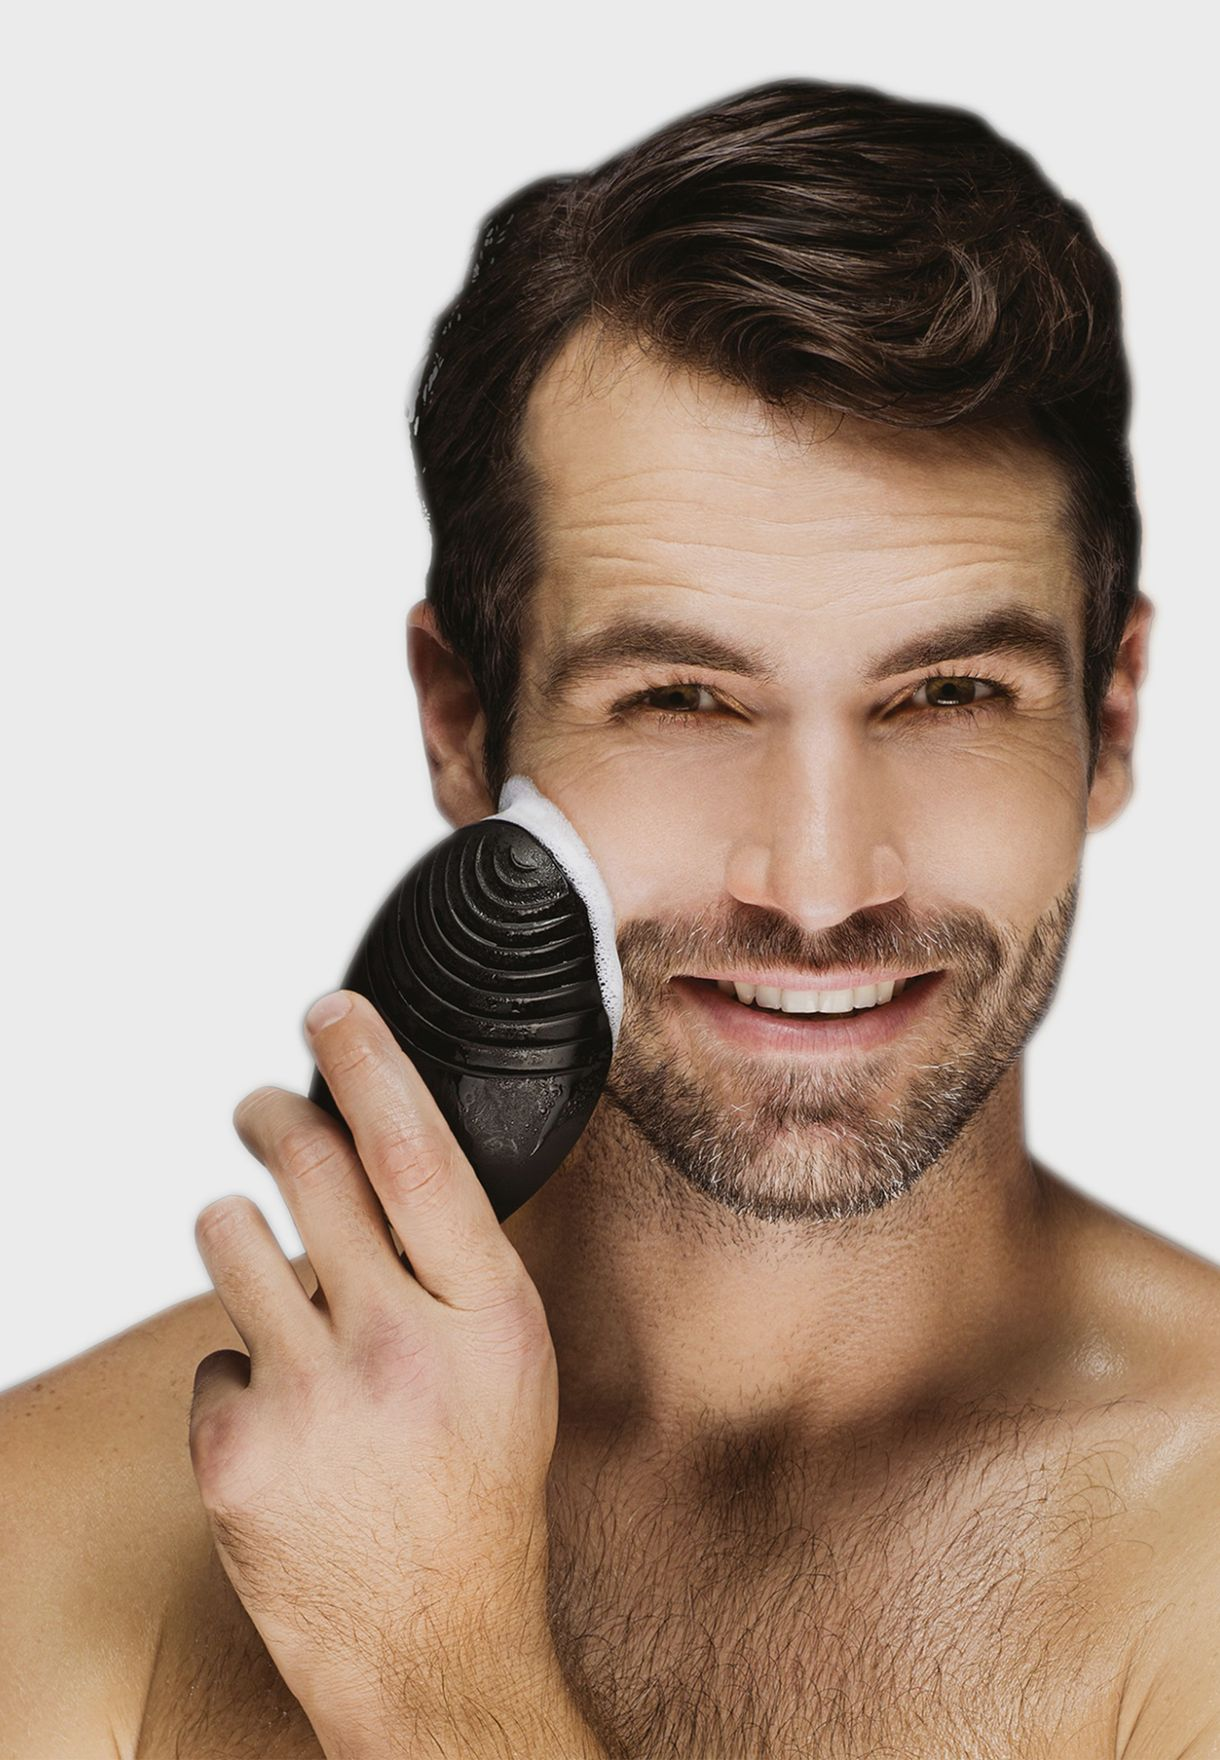 LUNA 2 Facial Cleansing Brush For Men